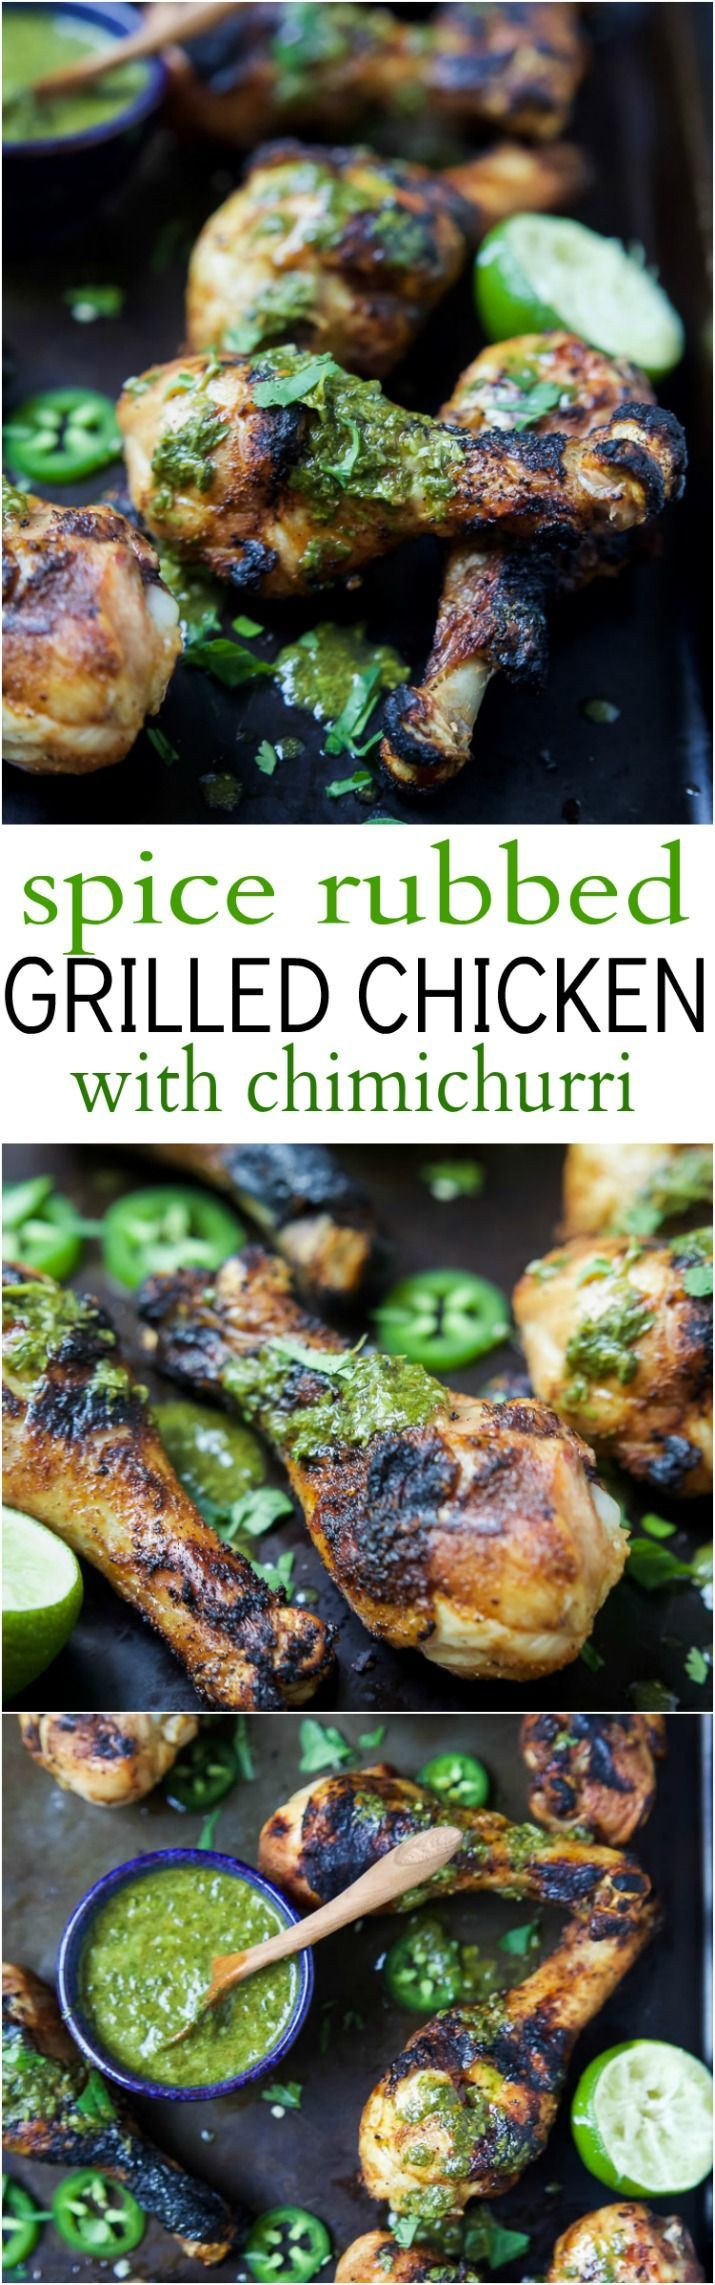 Spice Rub Grilled Chicken with a fresh Chimichurri sauce - a healthy, easy, 30 minute meal packed with fresh zesty flavors. This chicken recipe will quickly be a family favorite! | joyfulhealthyeats... #paleo #glutenfree